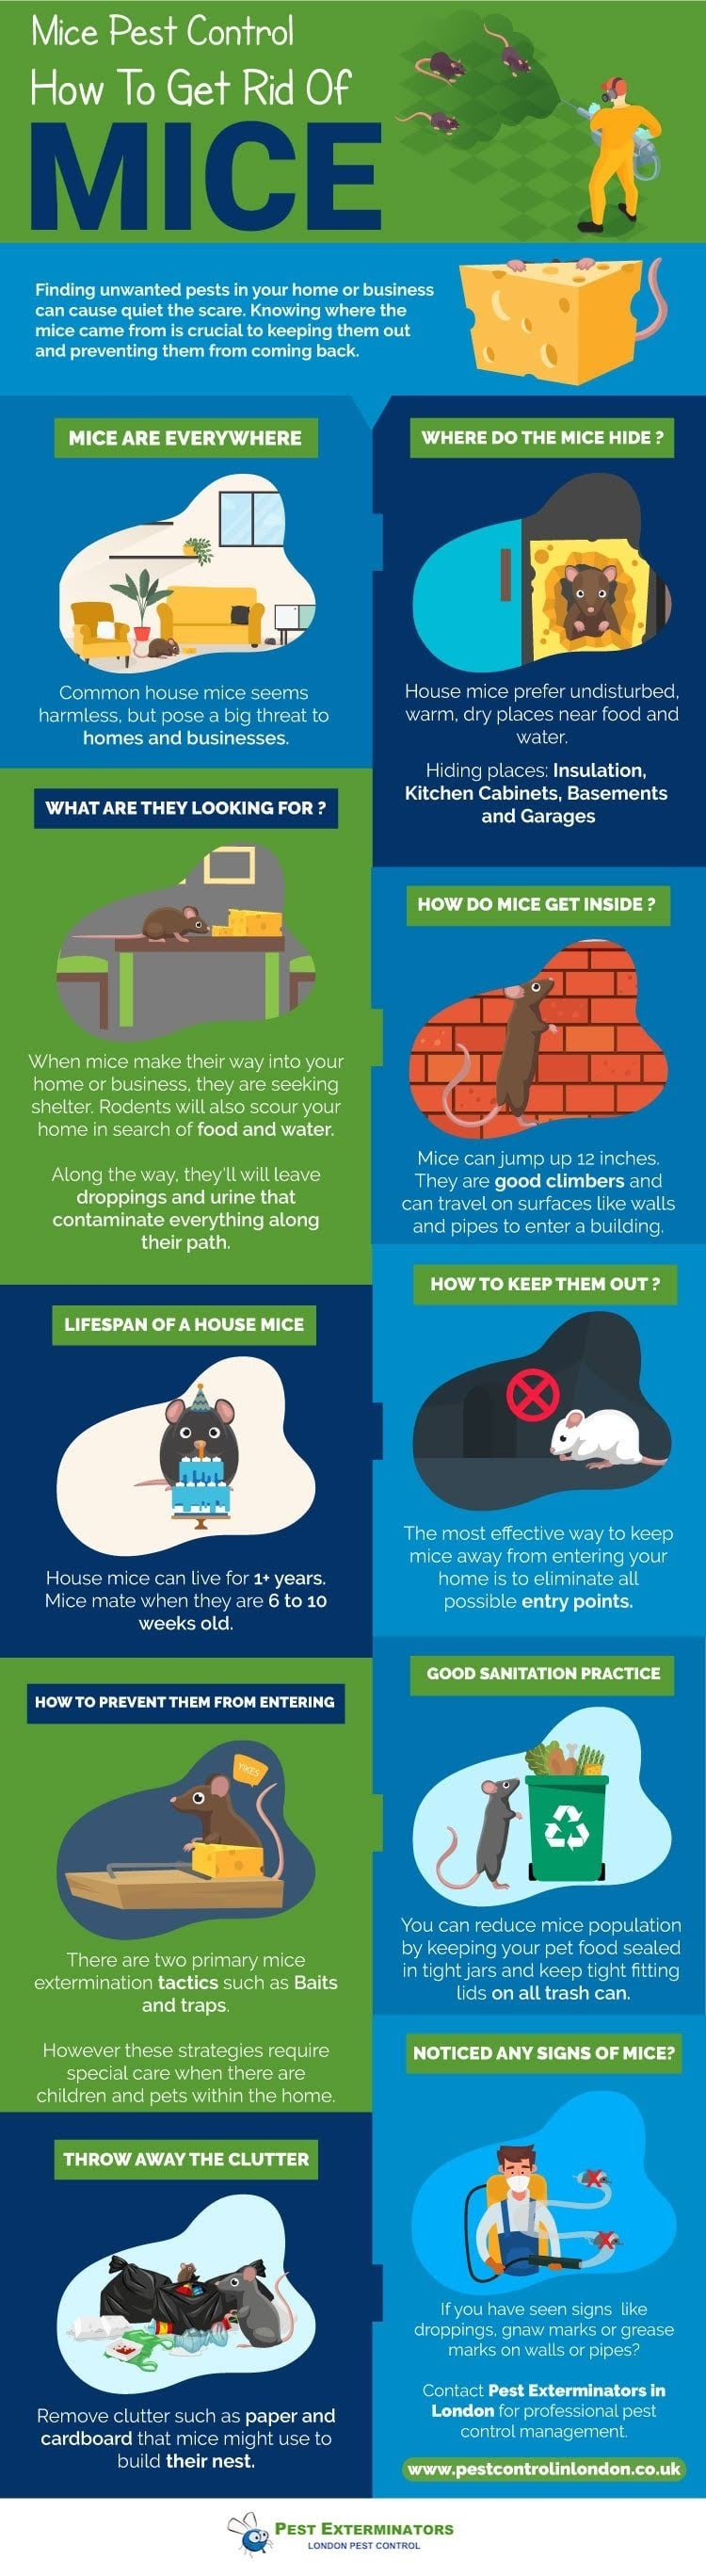 How To Get Rid of Mice? #infographic